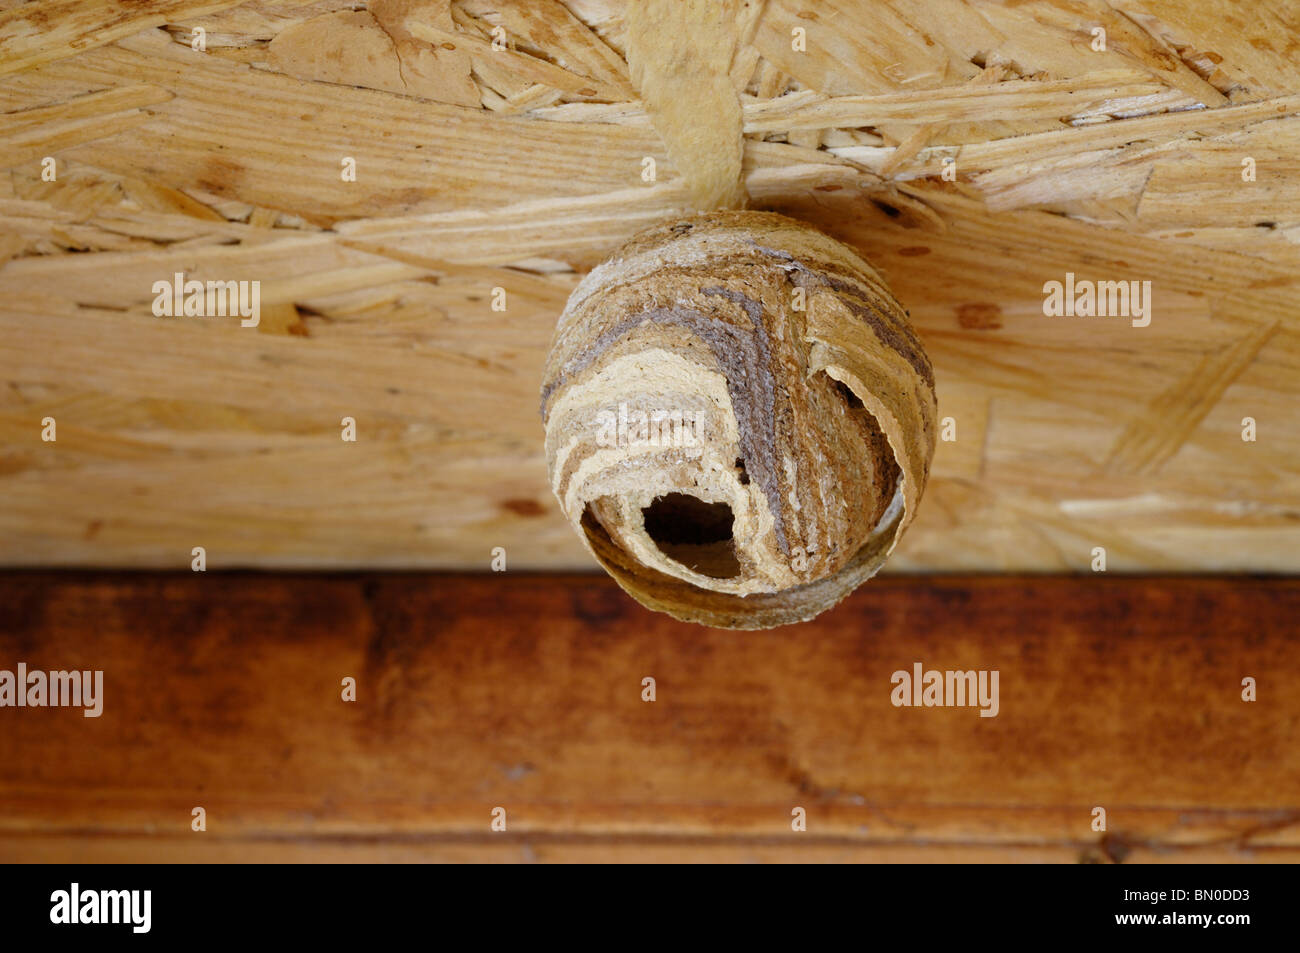 The Early Stages Of A Common Wasp Nest Hanging On The Roof